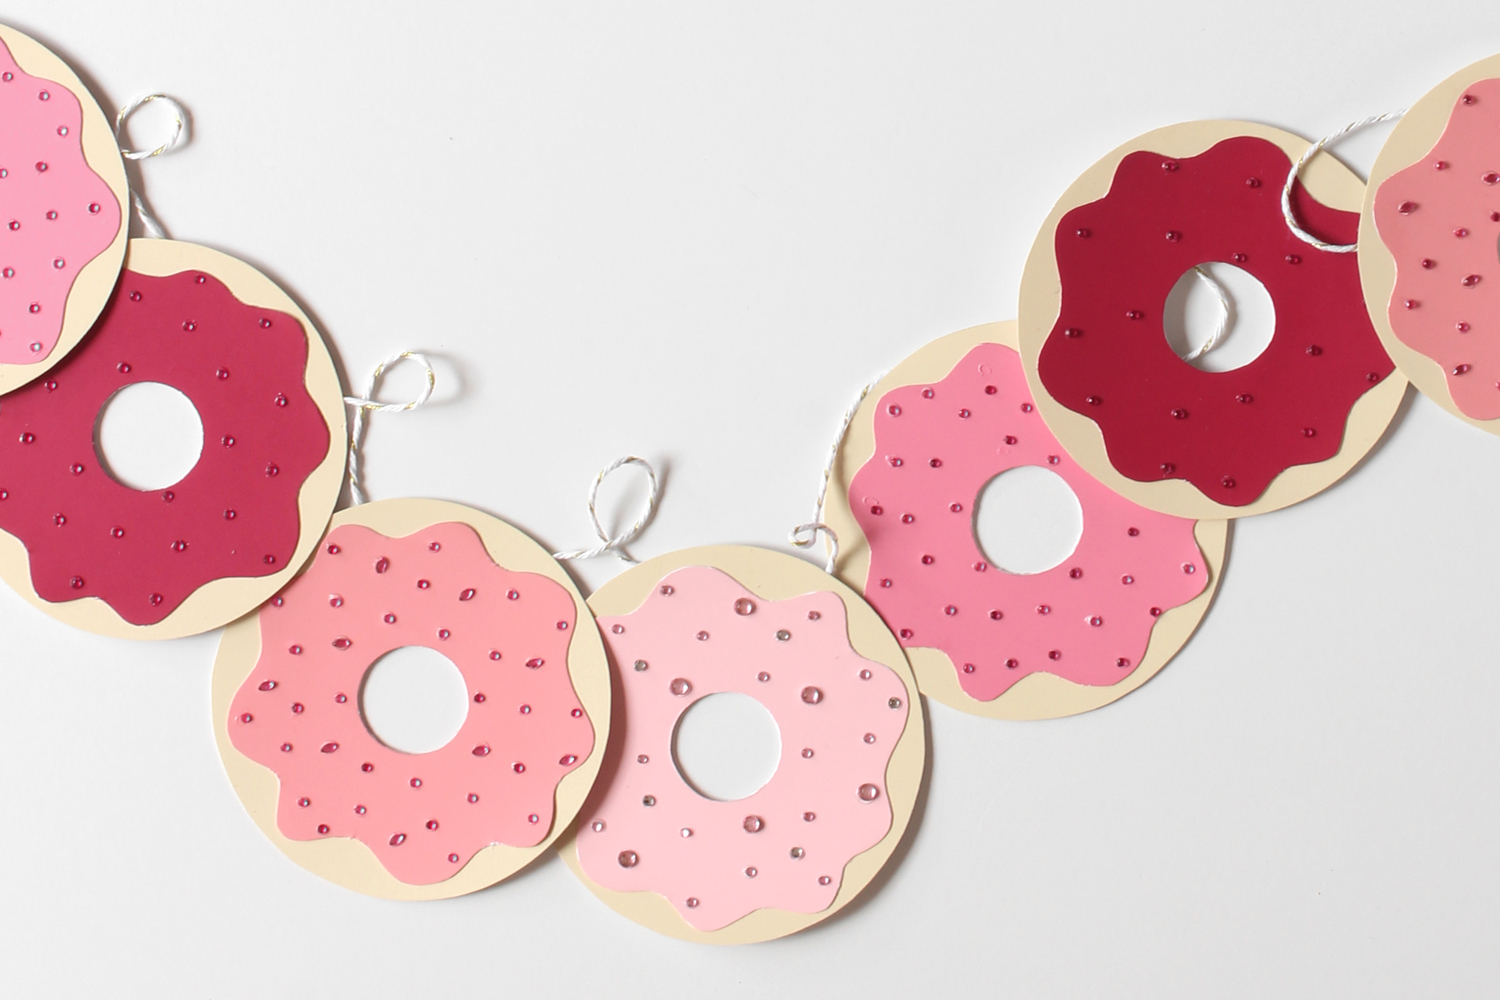 DIY paper donut garland with paint chips